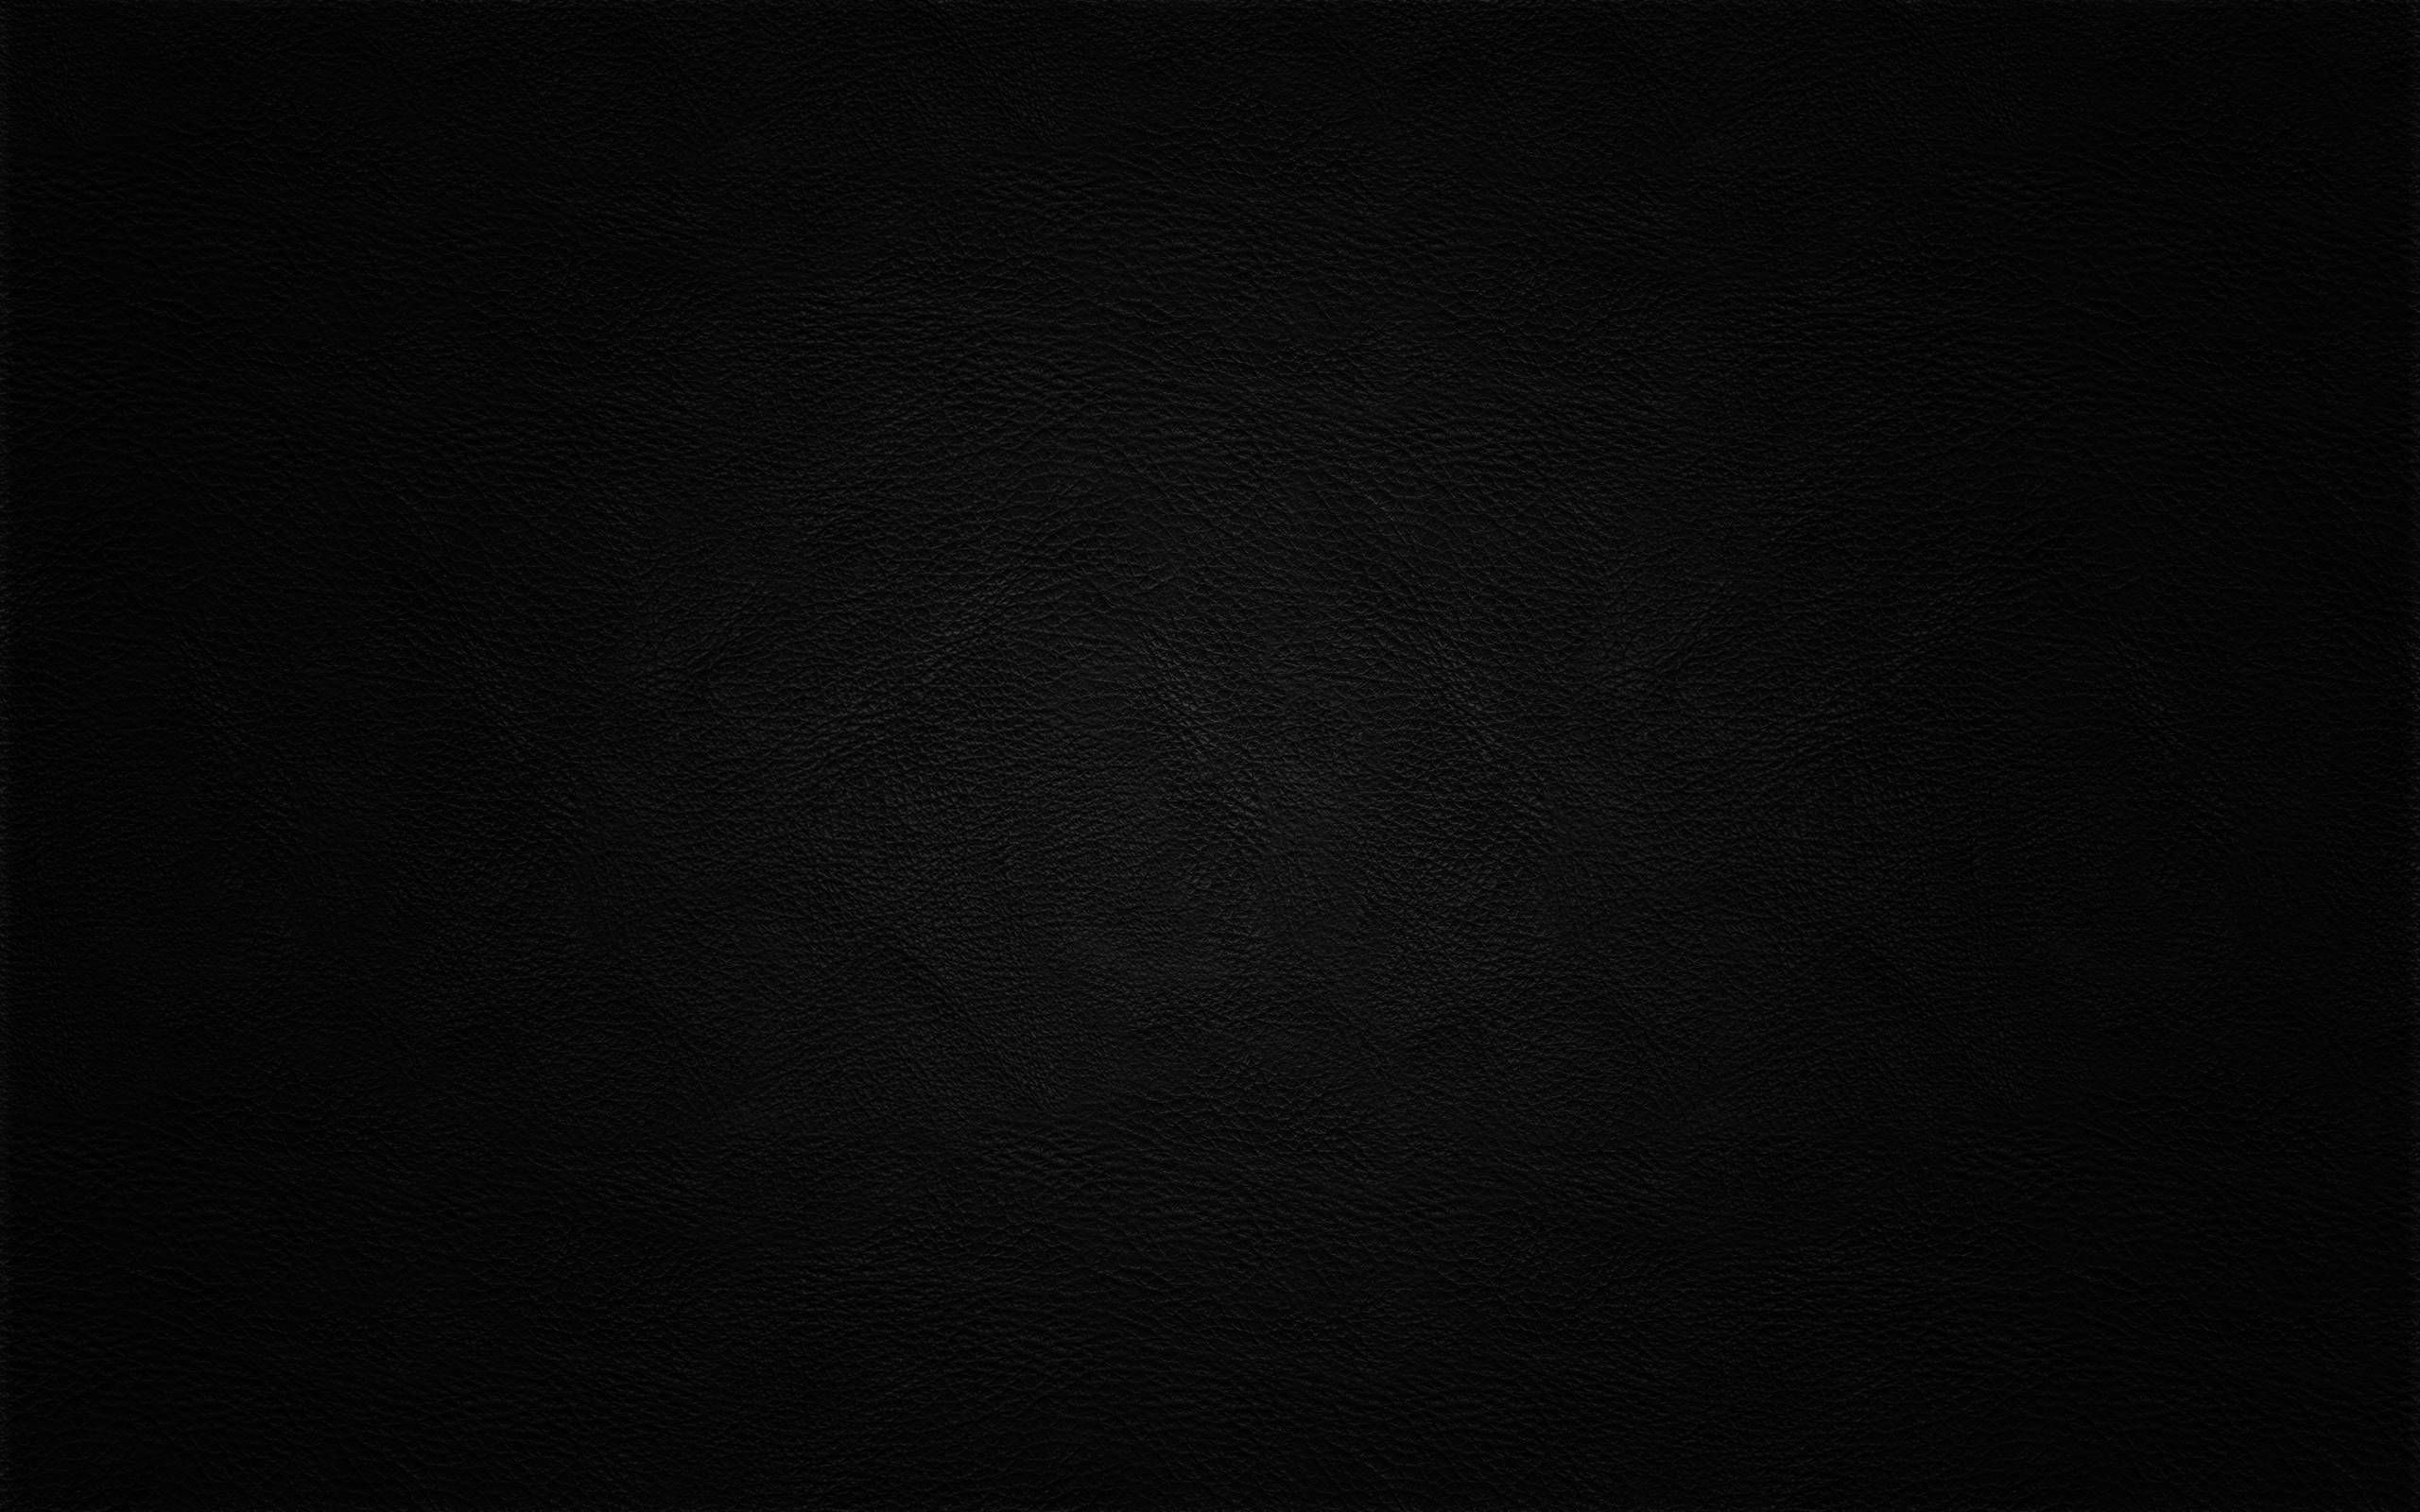 black wallpaper in fhd for free download for android desktop